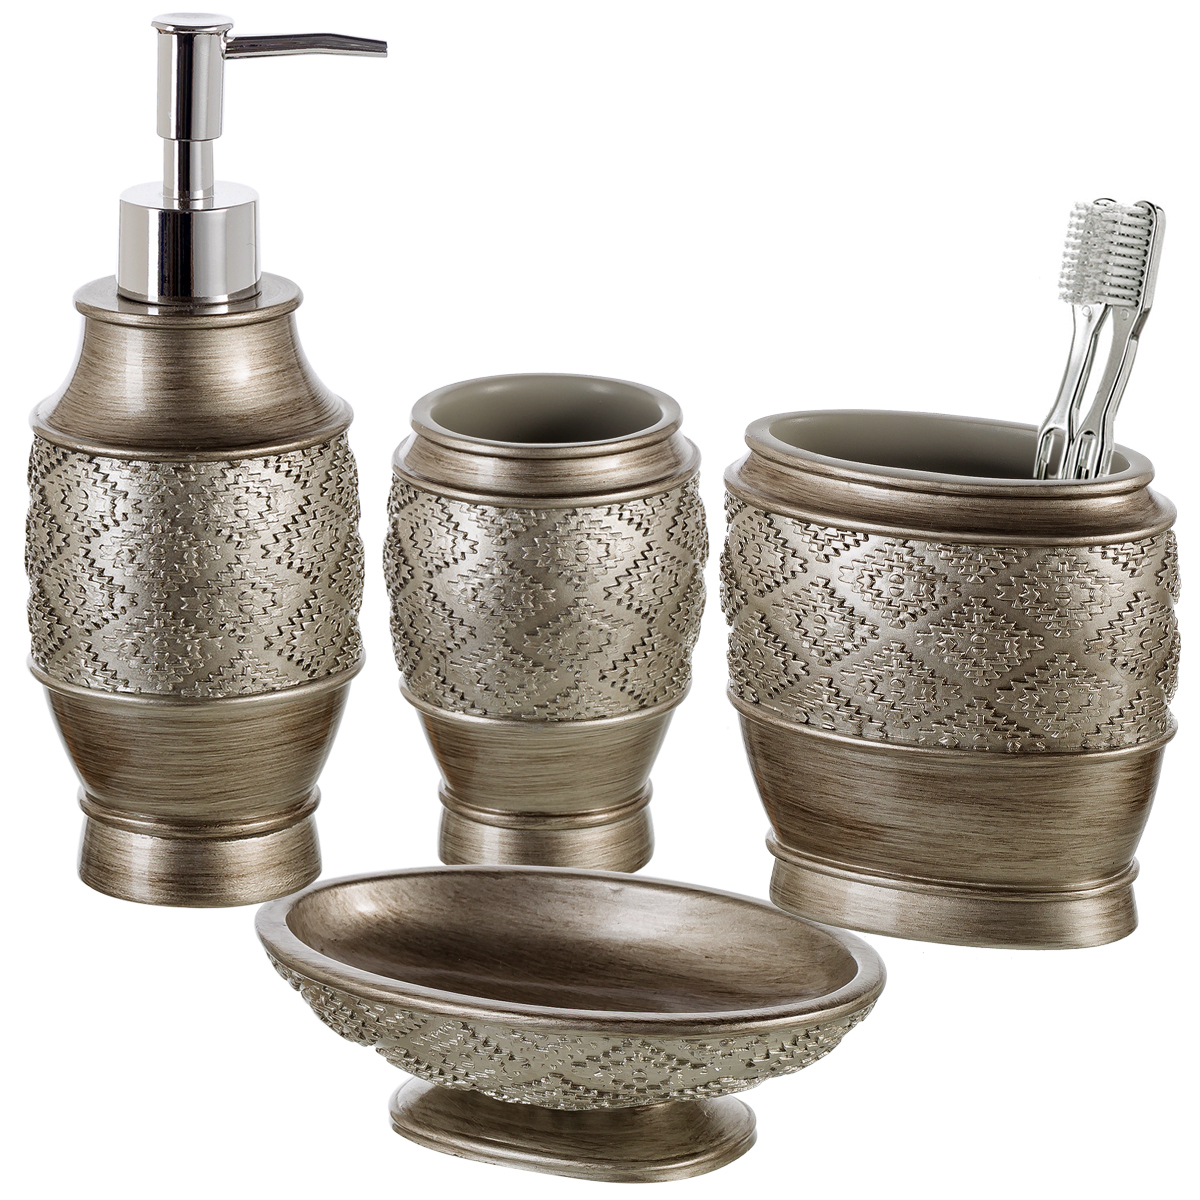 Bathroom Dispenser Set Dublin 4 Piece Bathroom Accessories Set Includes Decorative Countertop Soap Dispenser Dish Tumbler Toothbrush Holder Resin Vanity Ensemble Set